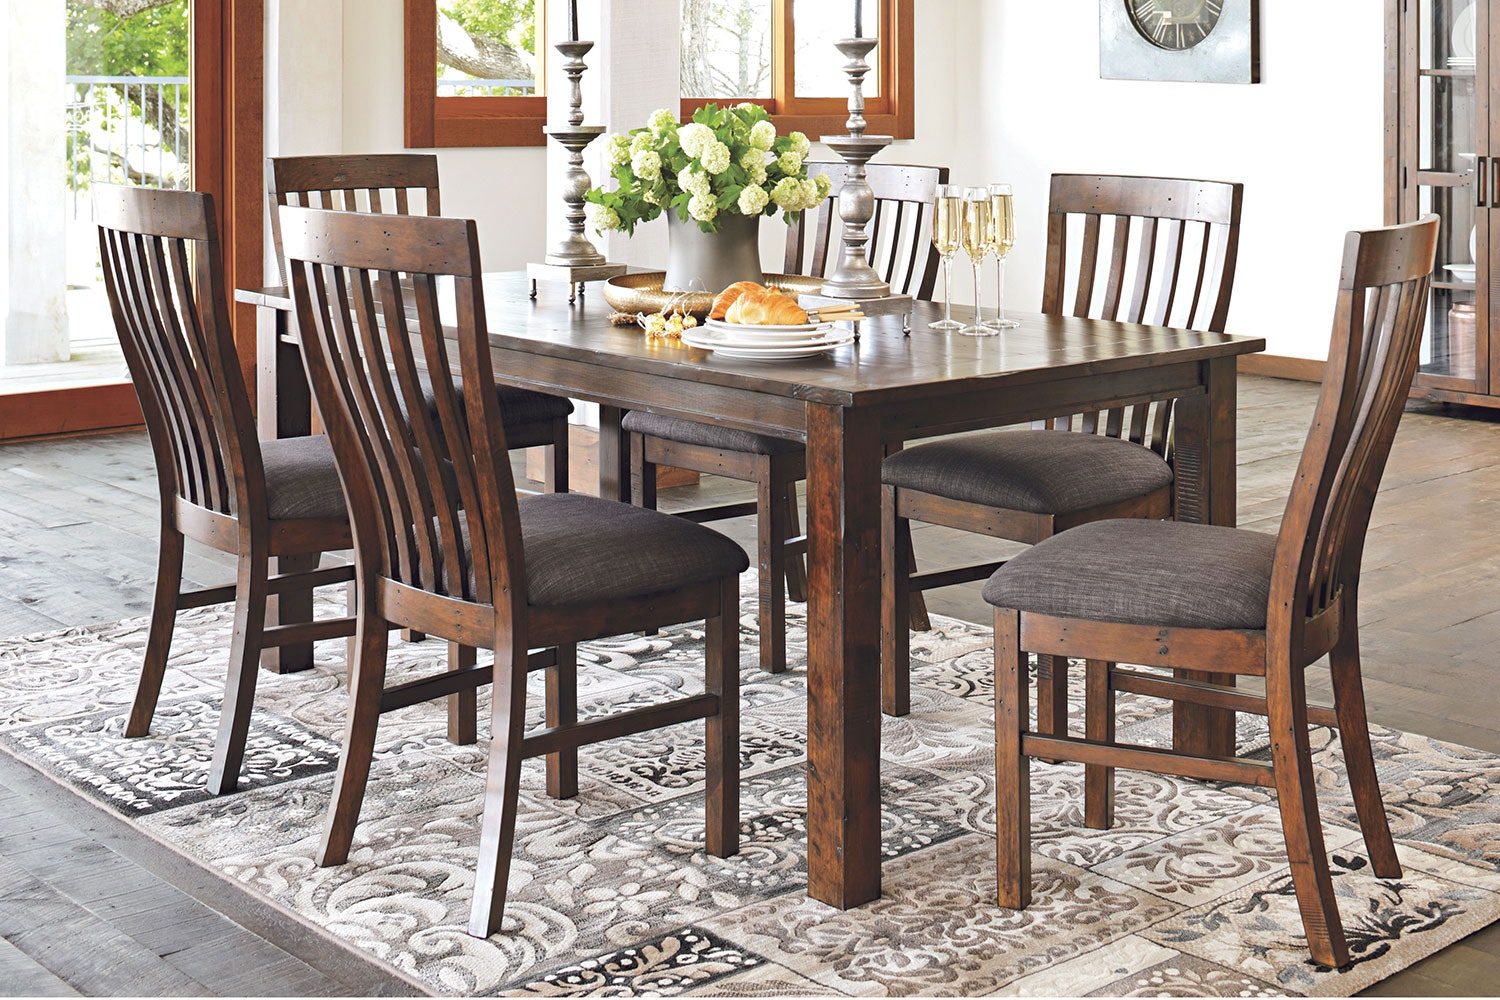 Elegant Farmhouse 7 Piece Dining Suite By John Young Furniture | Harvey Norman New  Zealand